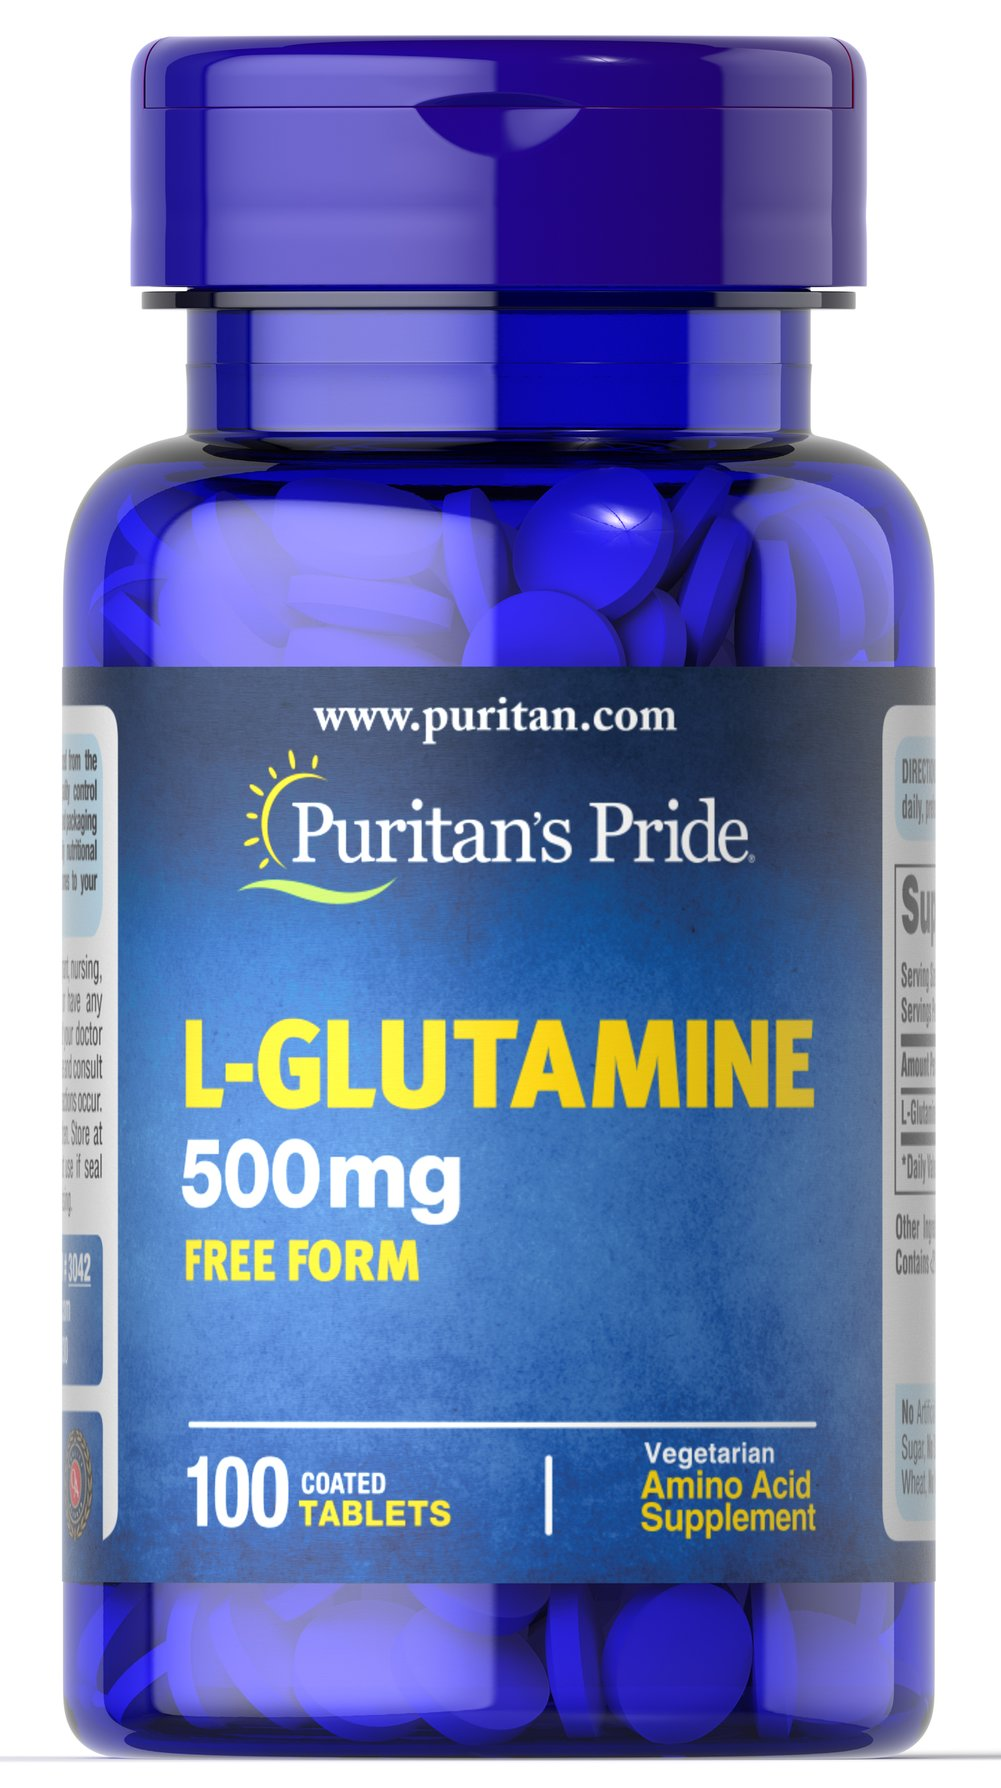 L-Glutamine 500 mg Thumbnail Alternate Bottle View